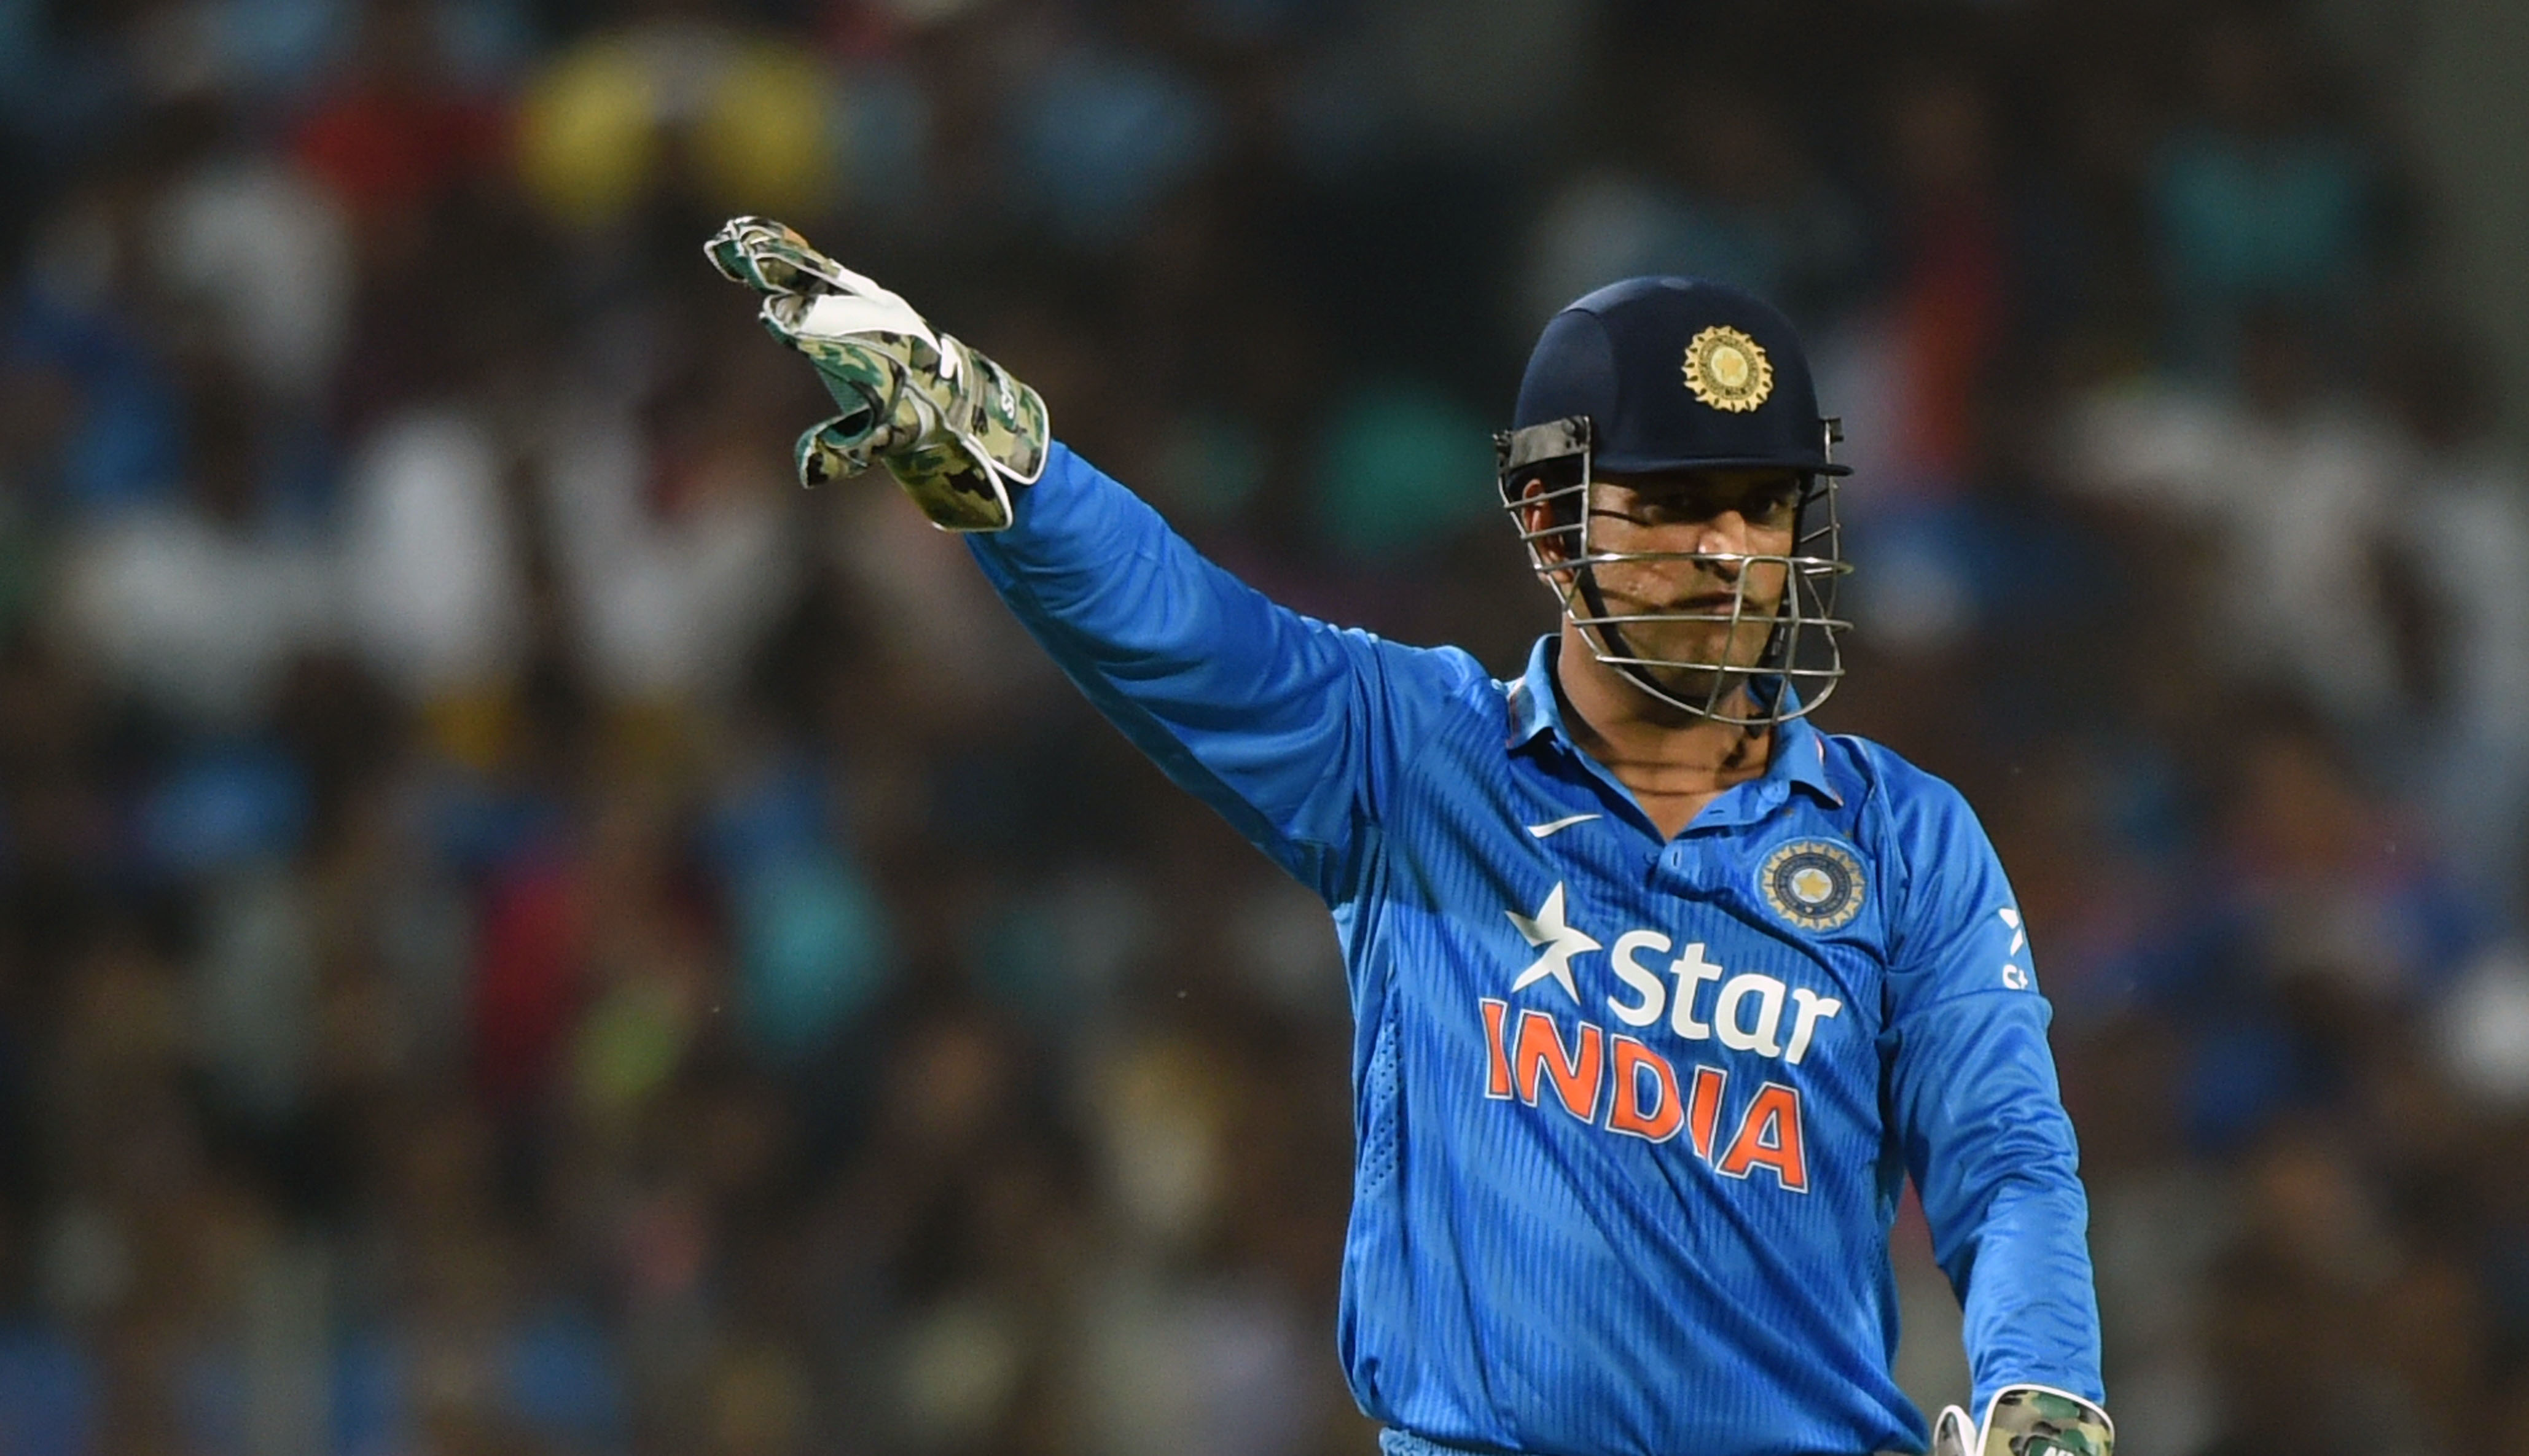 Indias-captain-Mahendra-Singh-Dhoni-makes-field-placement-during-the-first-T20-international-match-between-India-and-Sri-Lanka